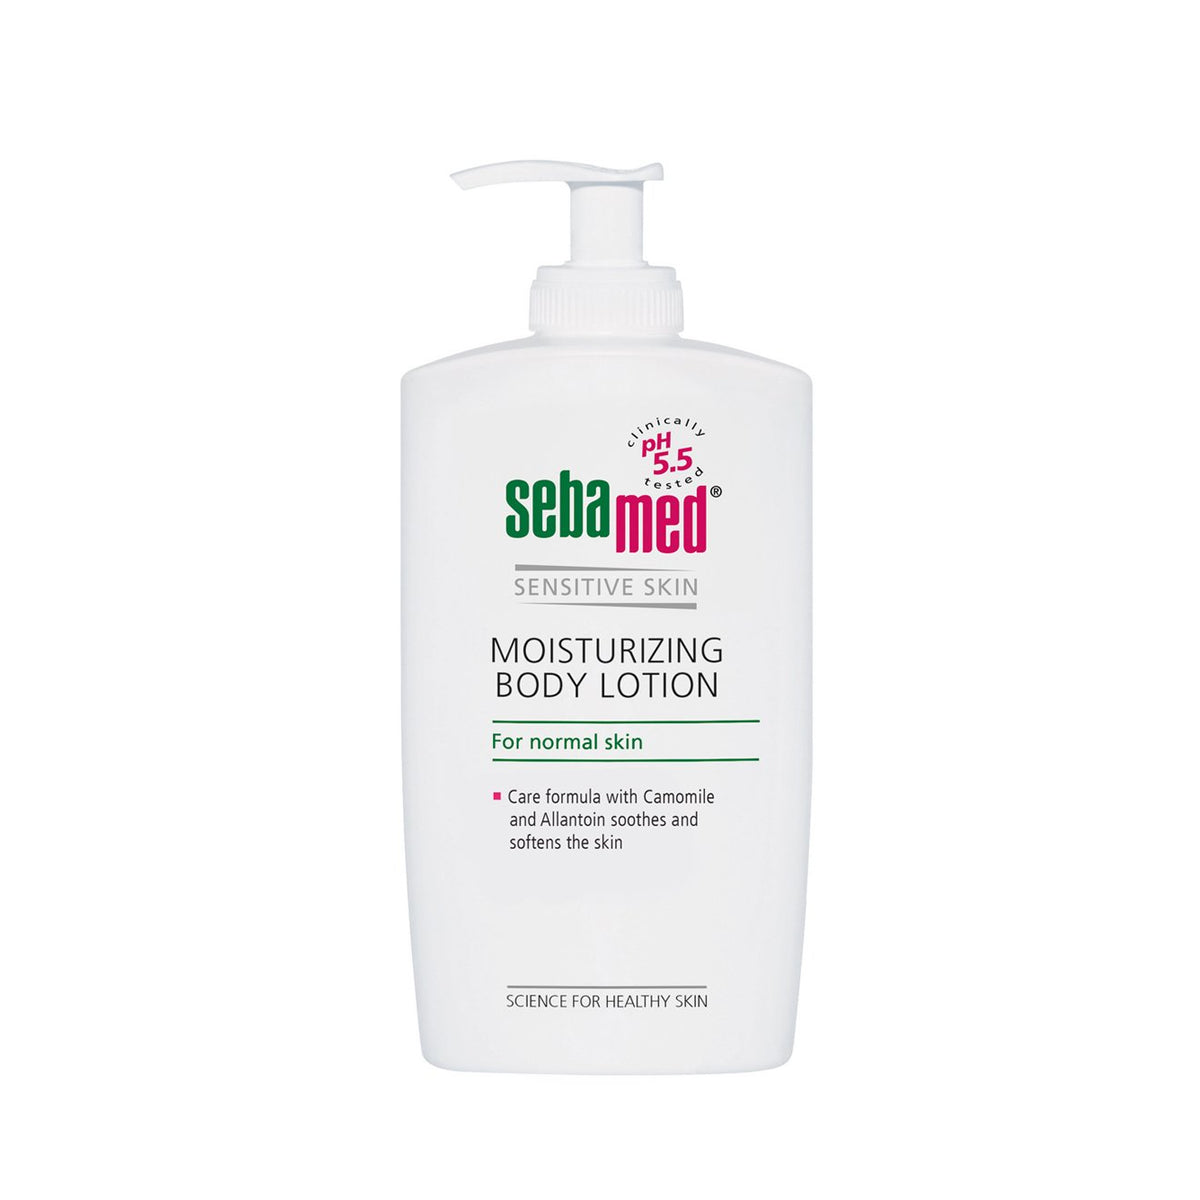 sebamed Moisturising Body Lotion 400ml with Pump